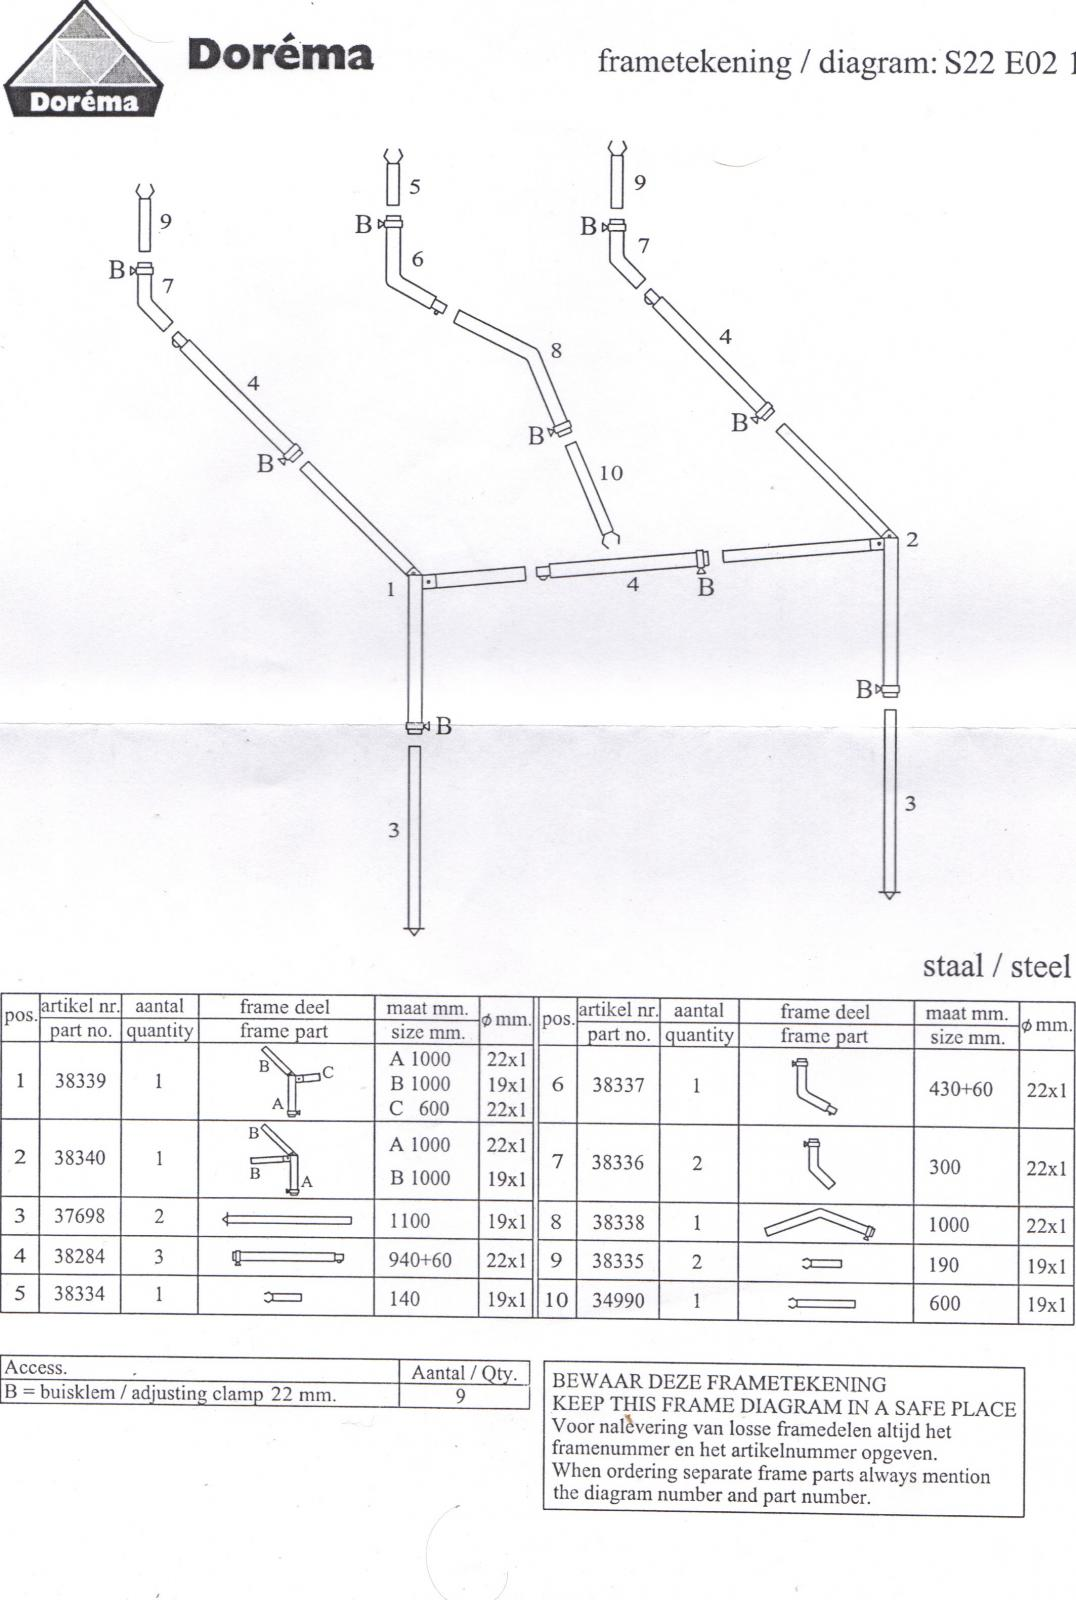 Dorema Porch Awning Frame Diagram Design Reviews Source Exclusive 250 Caravan New For 2015 YouTube Post 59950 0 83450100